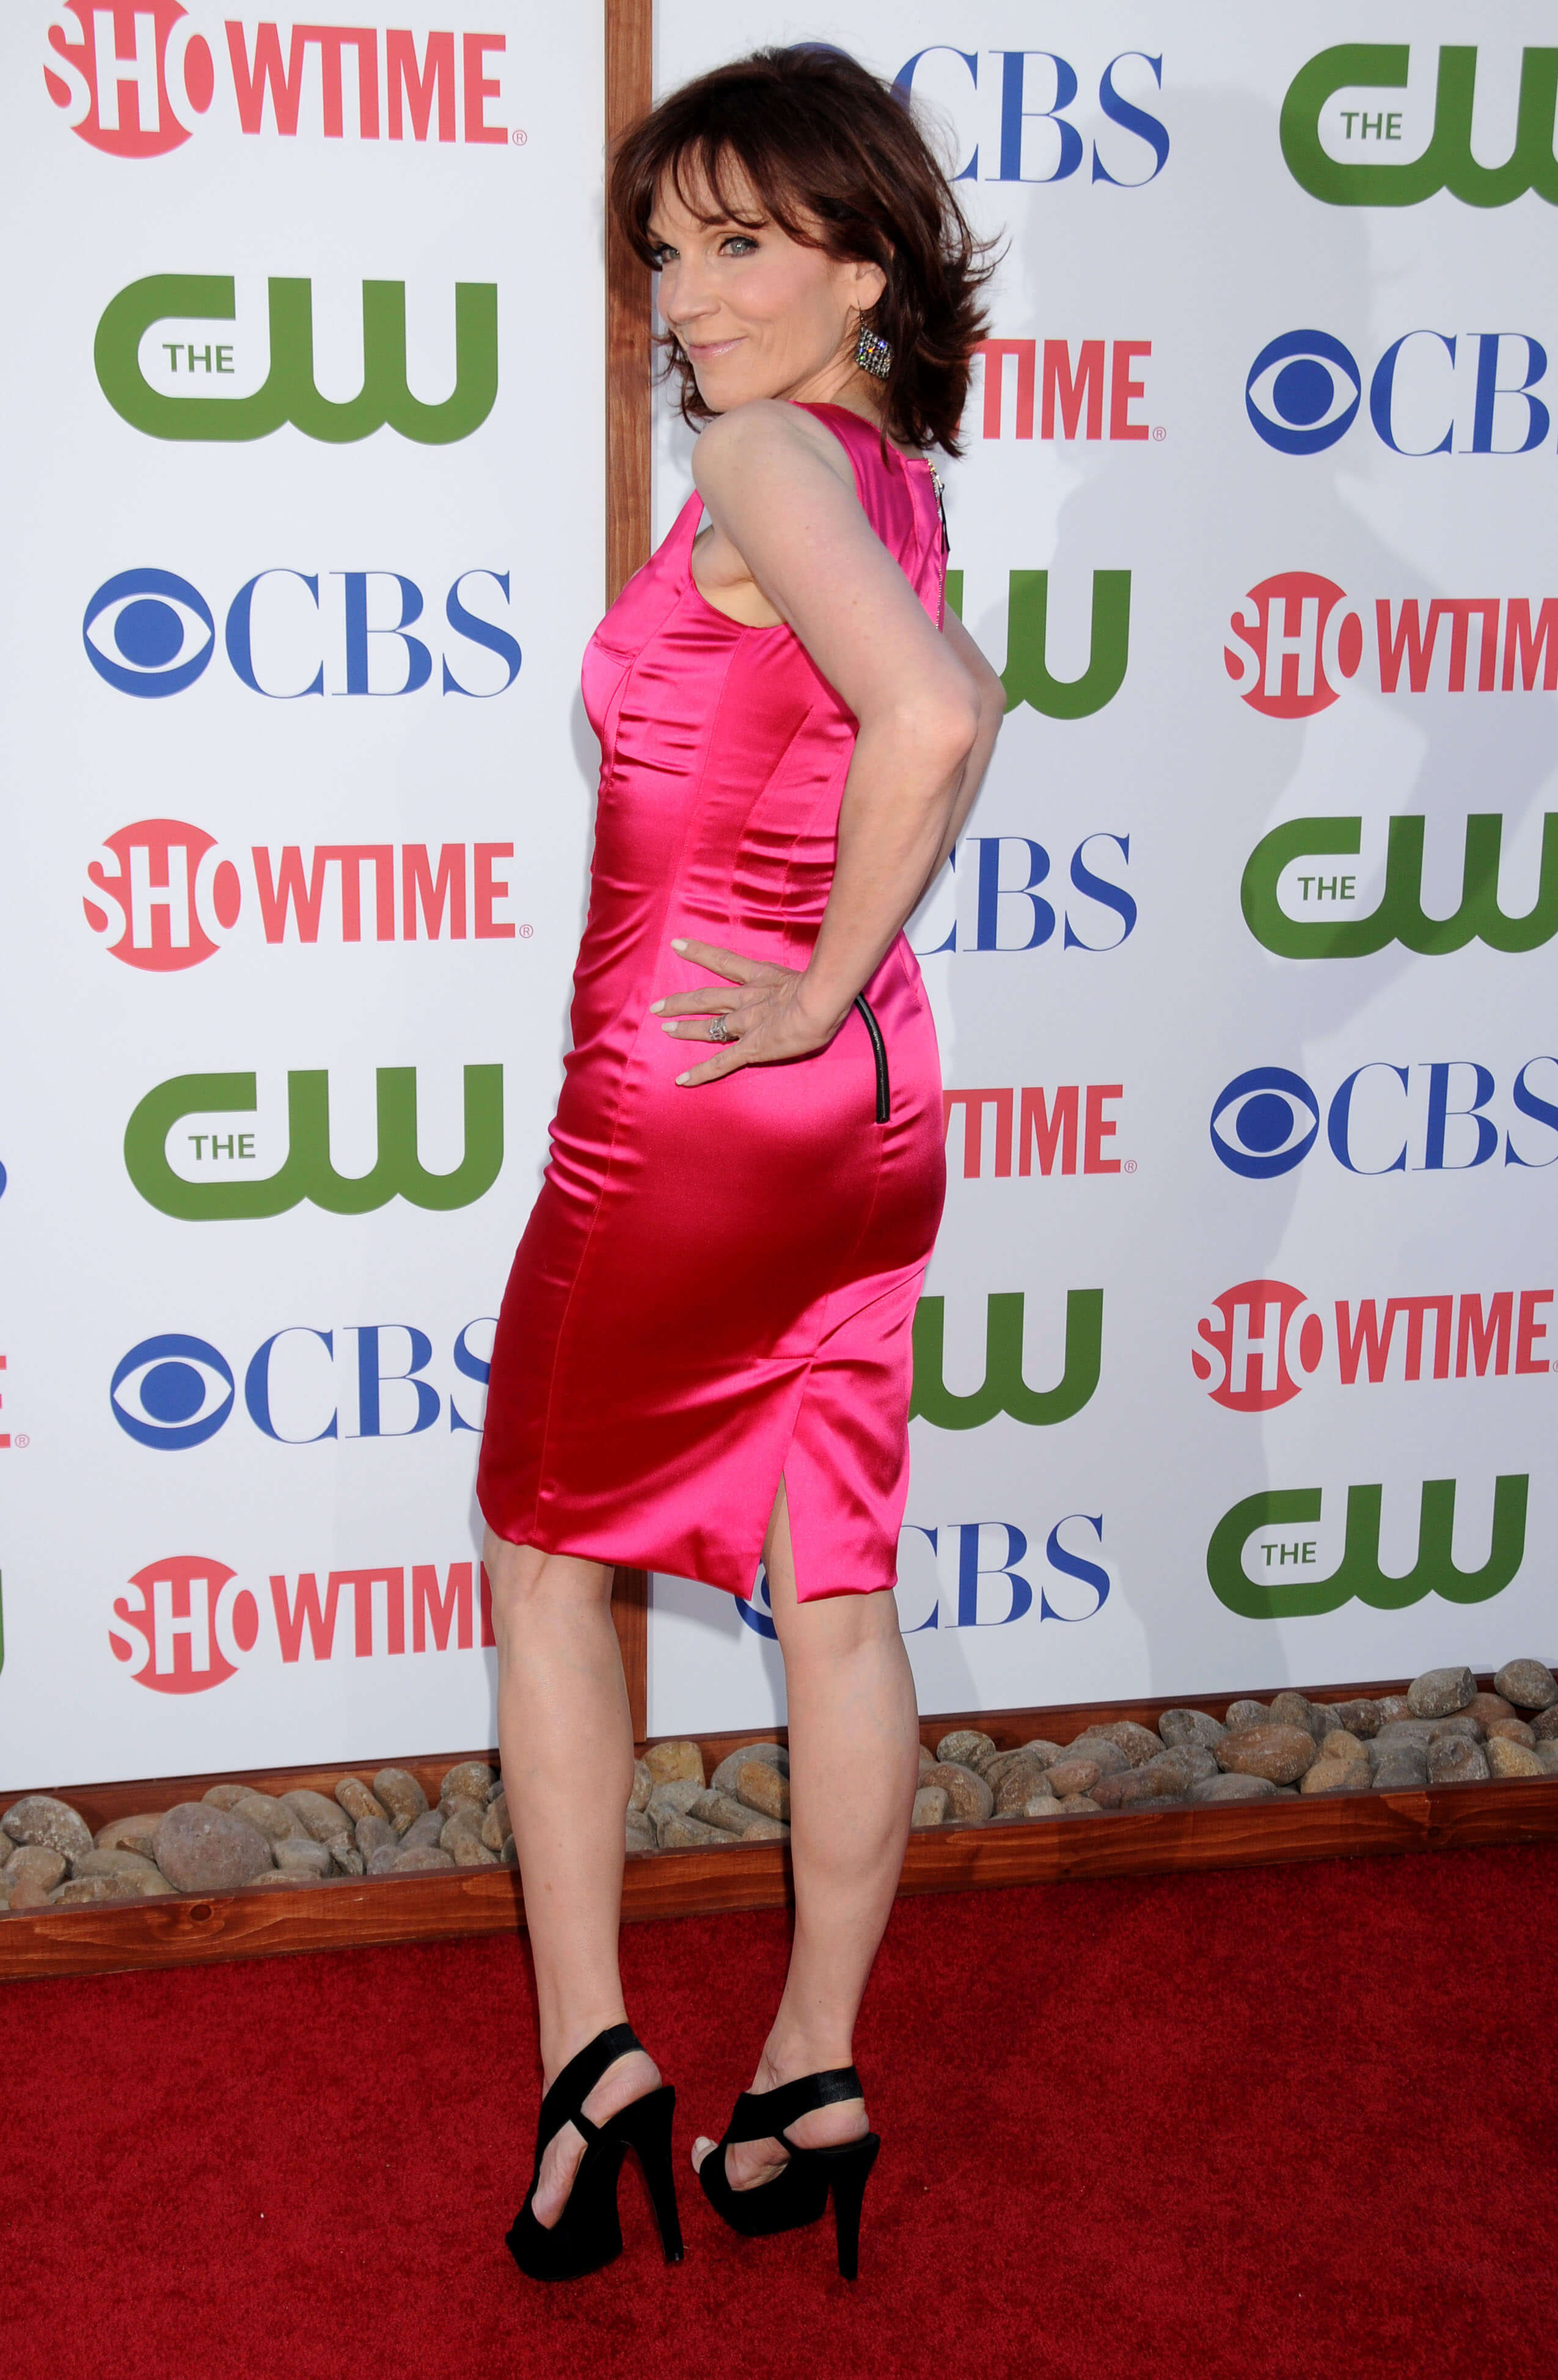 40 hot photos of Marilya Henner prove that she is the